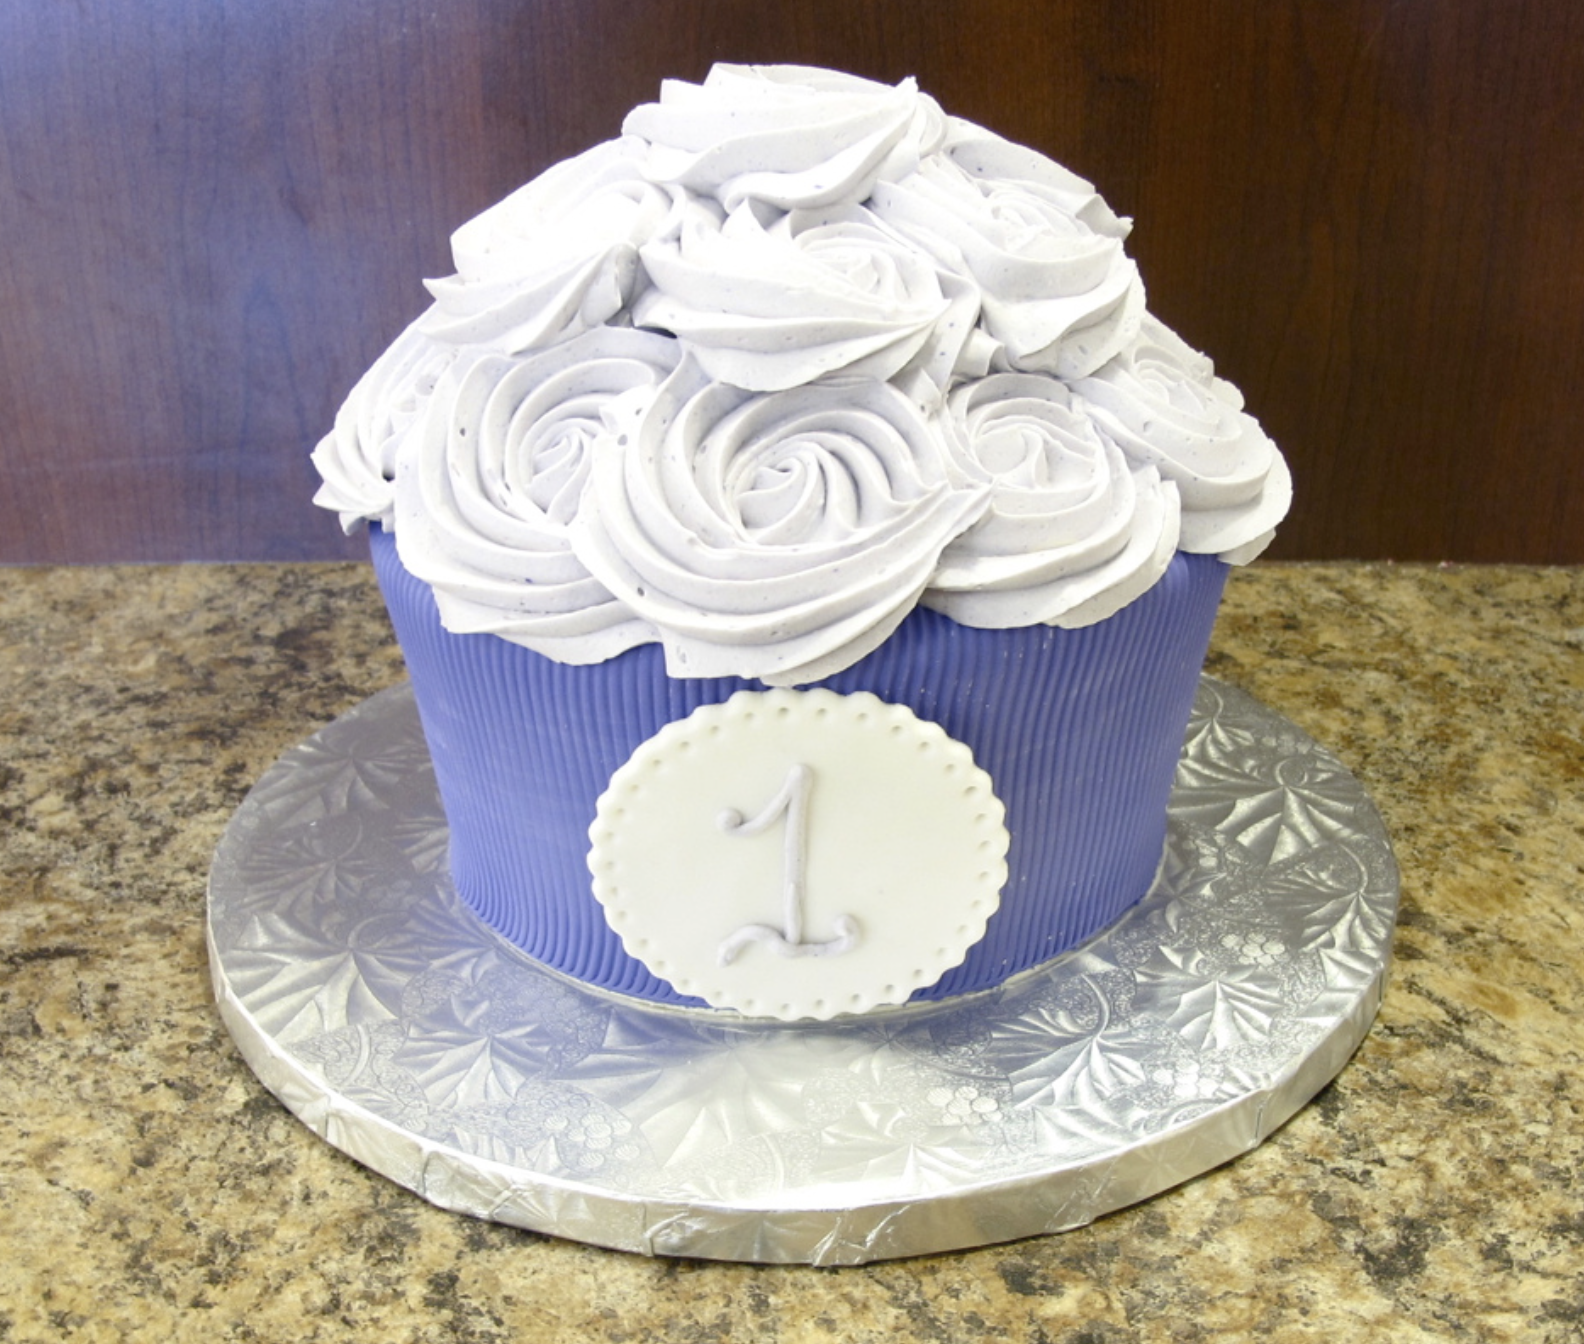 Cupcake shaped cake for a boy | Creative cakes, Childrens ...